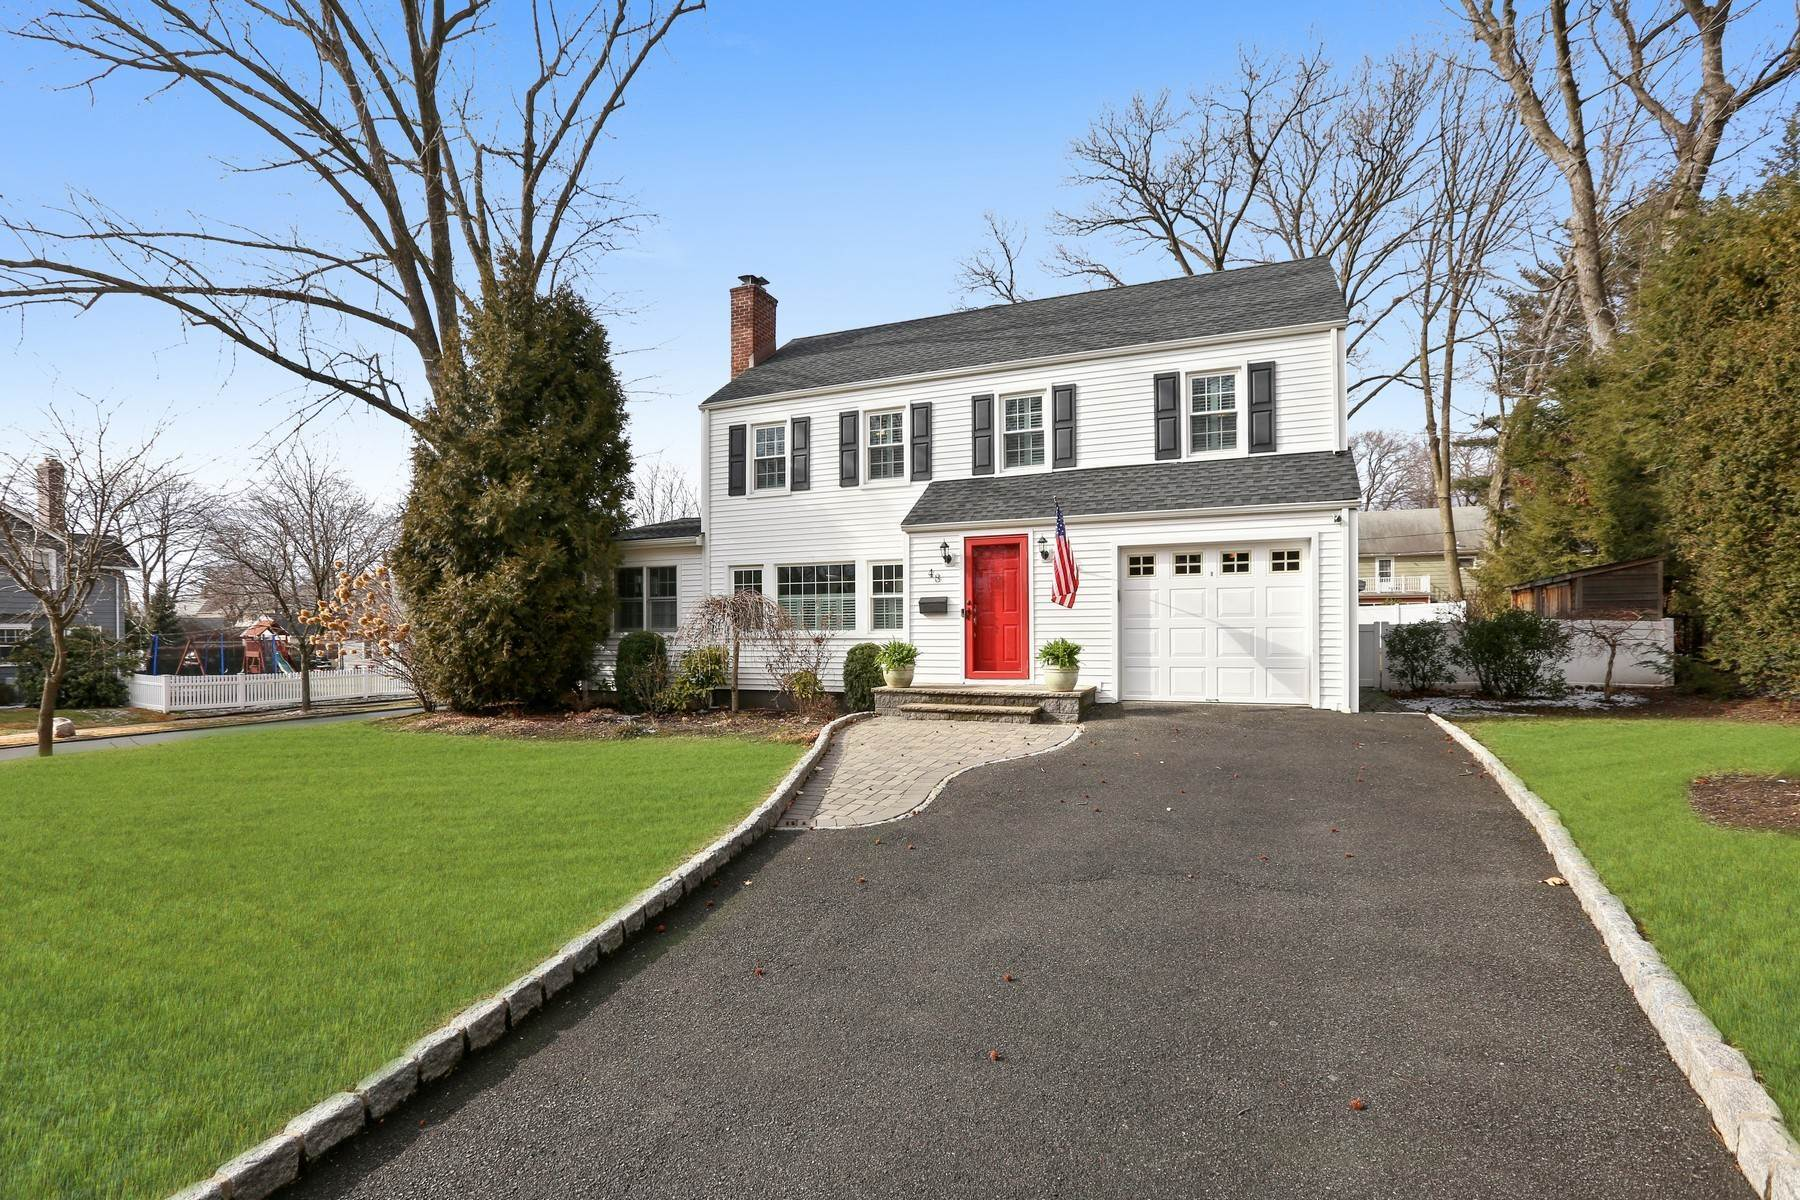 Single Family Homes for Sale at Perfect In Every Way! 48 Ridgewood Avenue, Glen Ridge, New Jersey 07028 United States